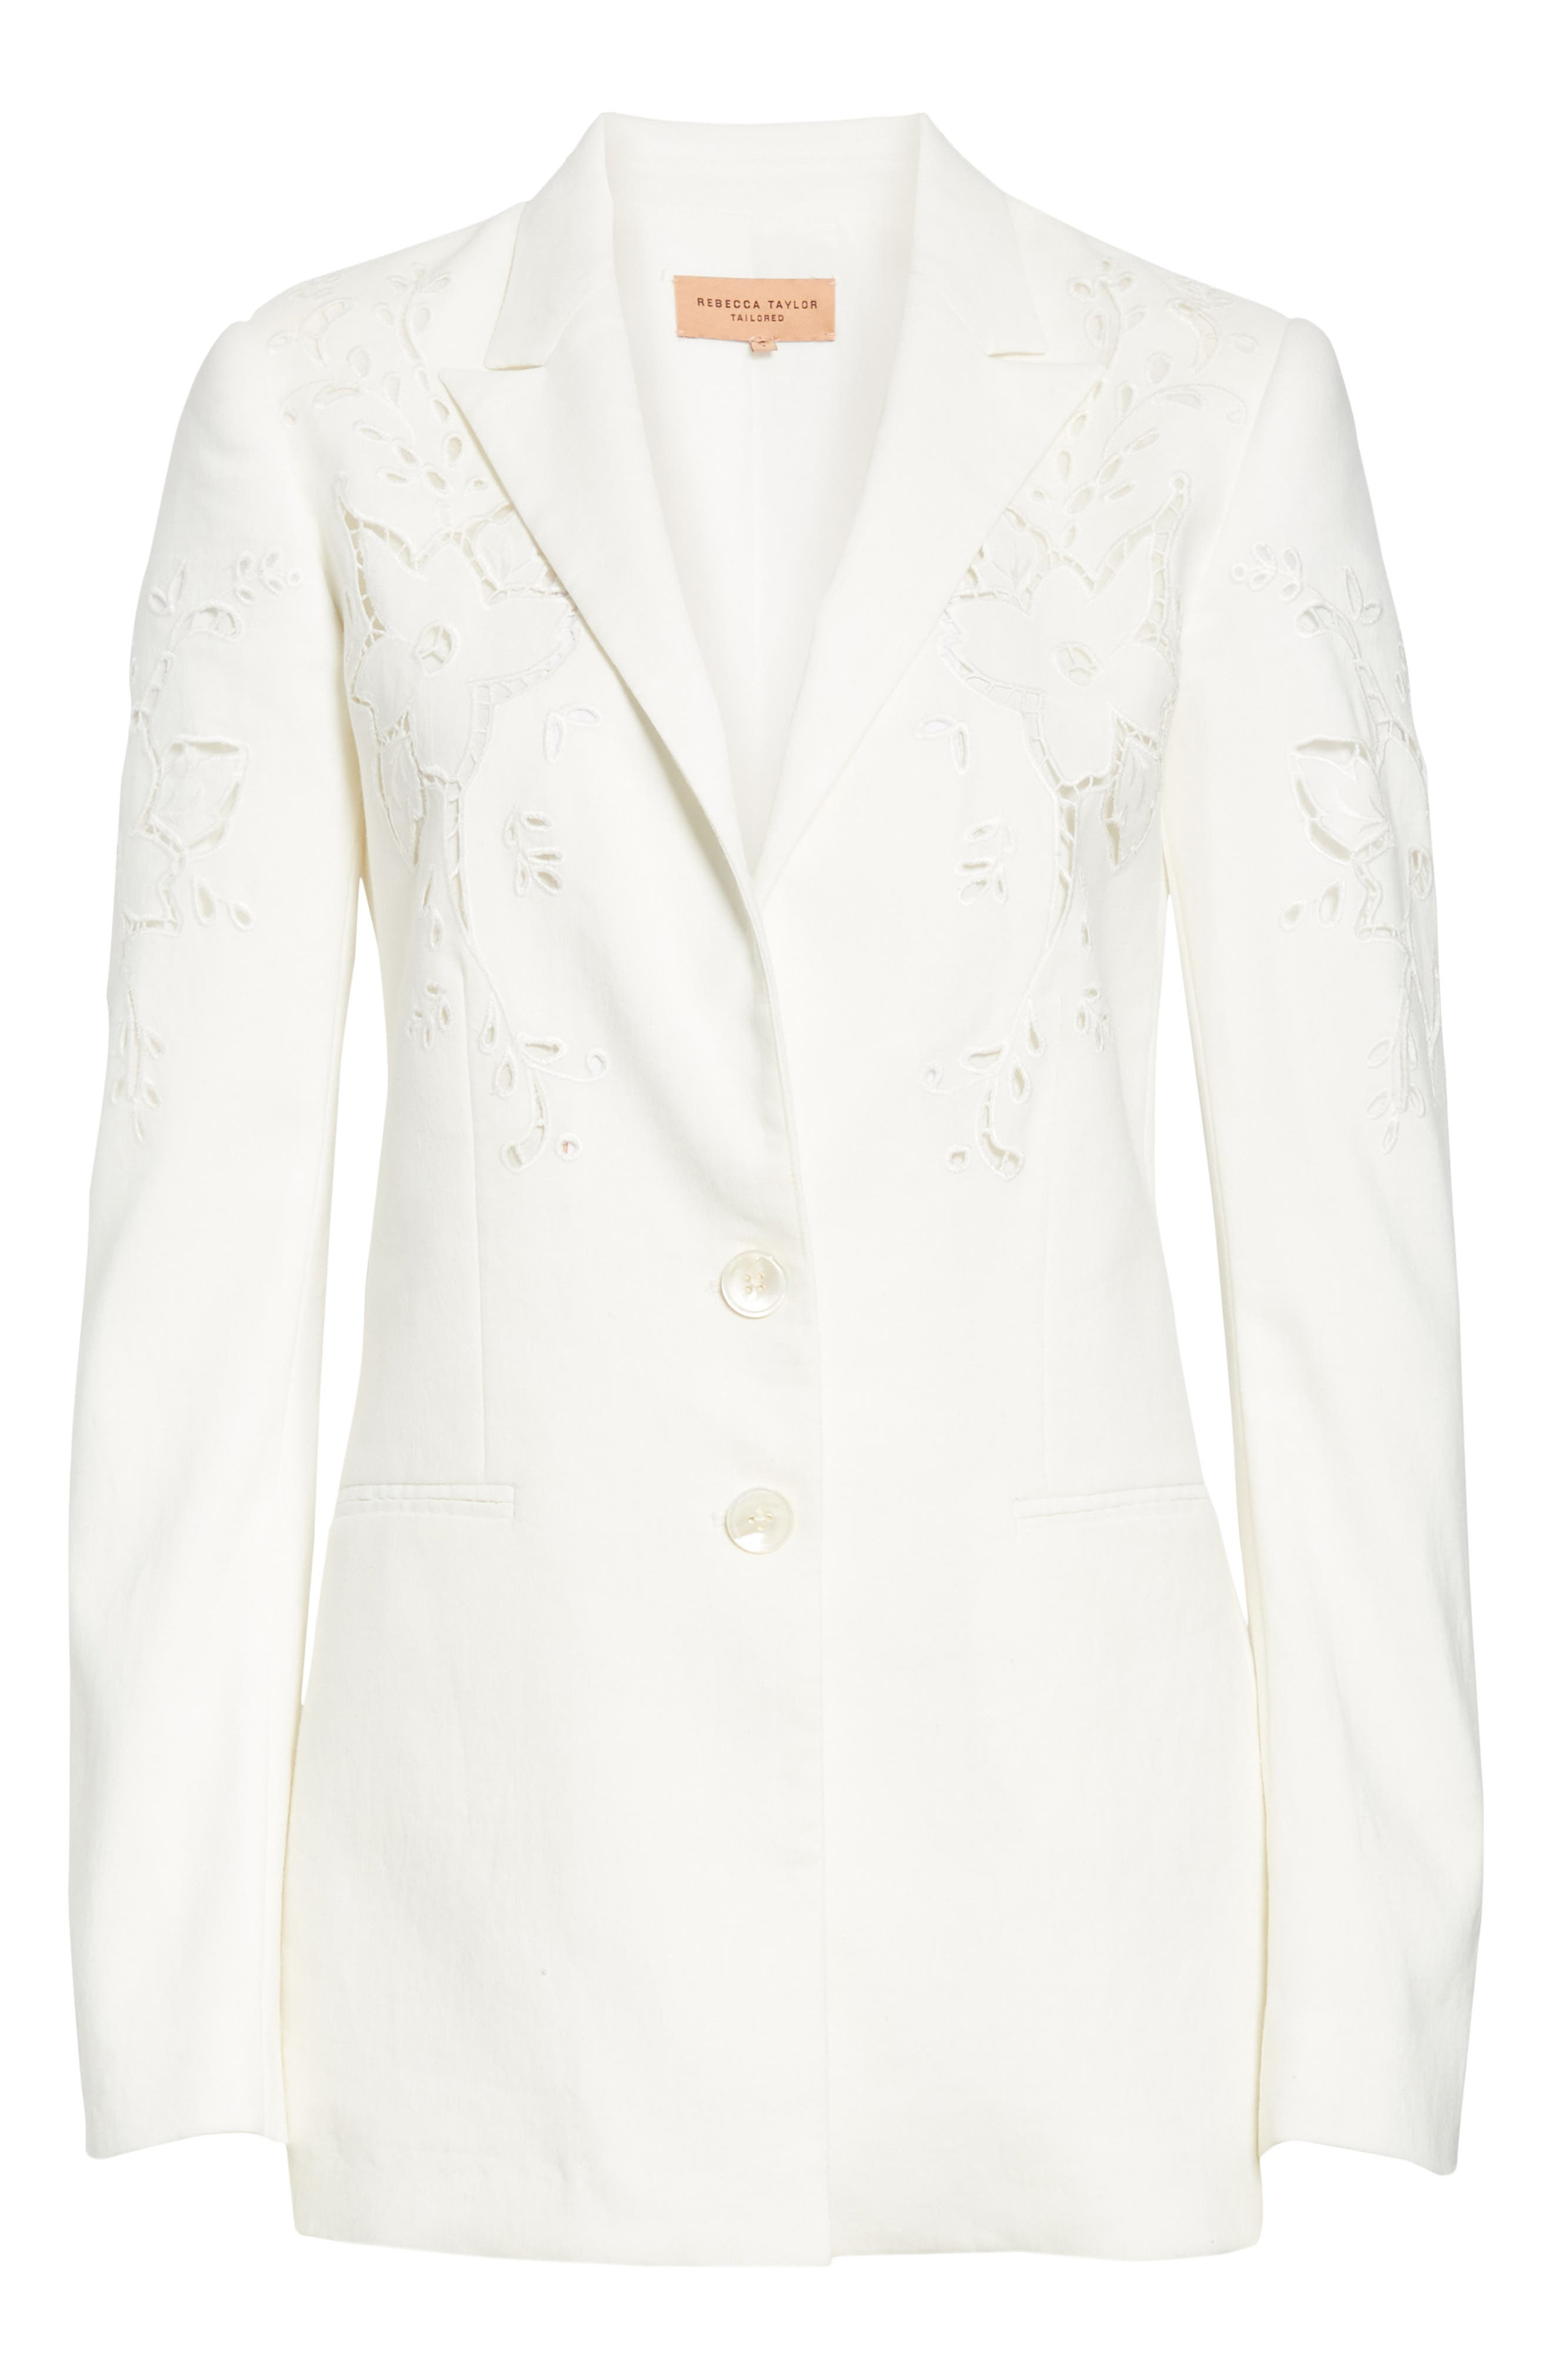 TAILORED BY REBECCA TAYLOR,                             Eyelet Embroidery Linen Blend Blazer,                             Alternate thumbnail 5, color,                             SNOW